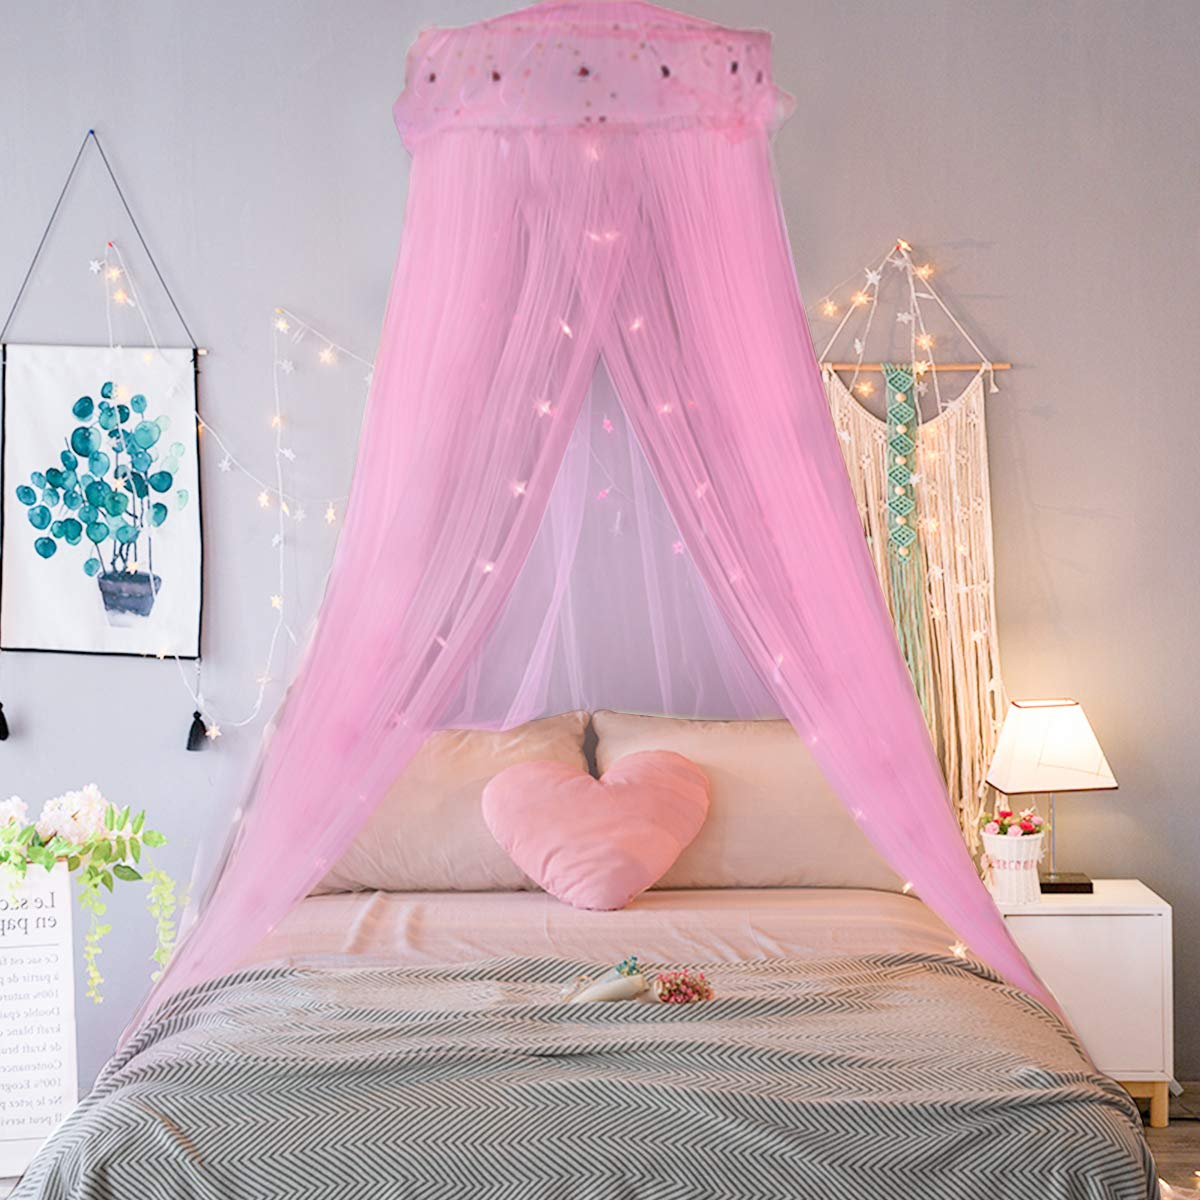 Jeteven Princess Mosquito Net Lace Dome Bed Canopy for Children Fly Insect Protection Indoor/Outdoor & Princess Bed Canopy: Amazon.co.uk